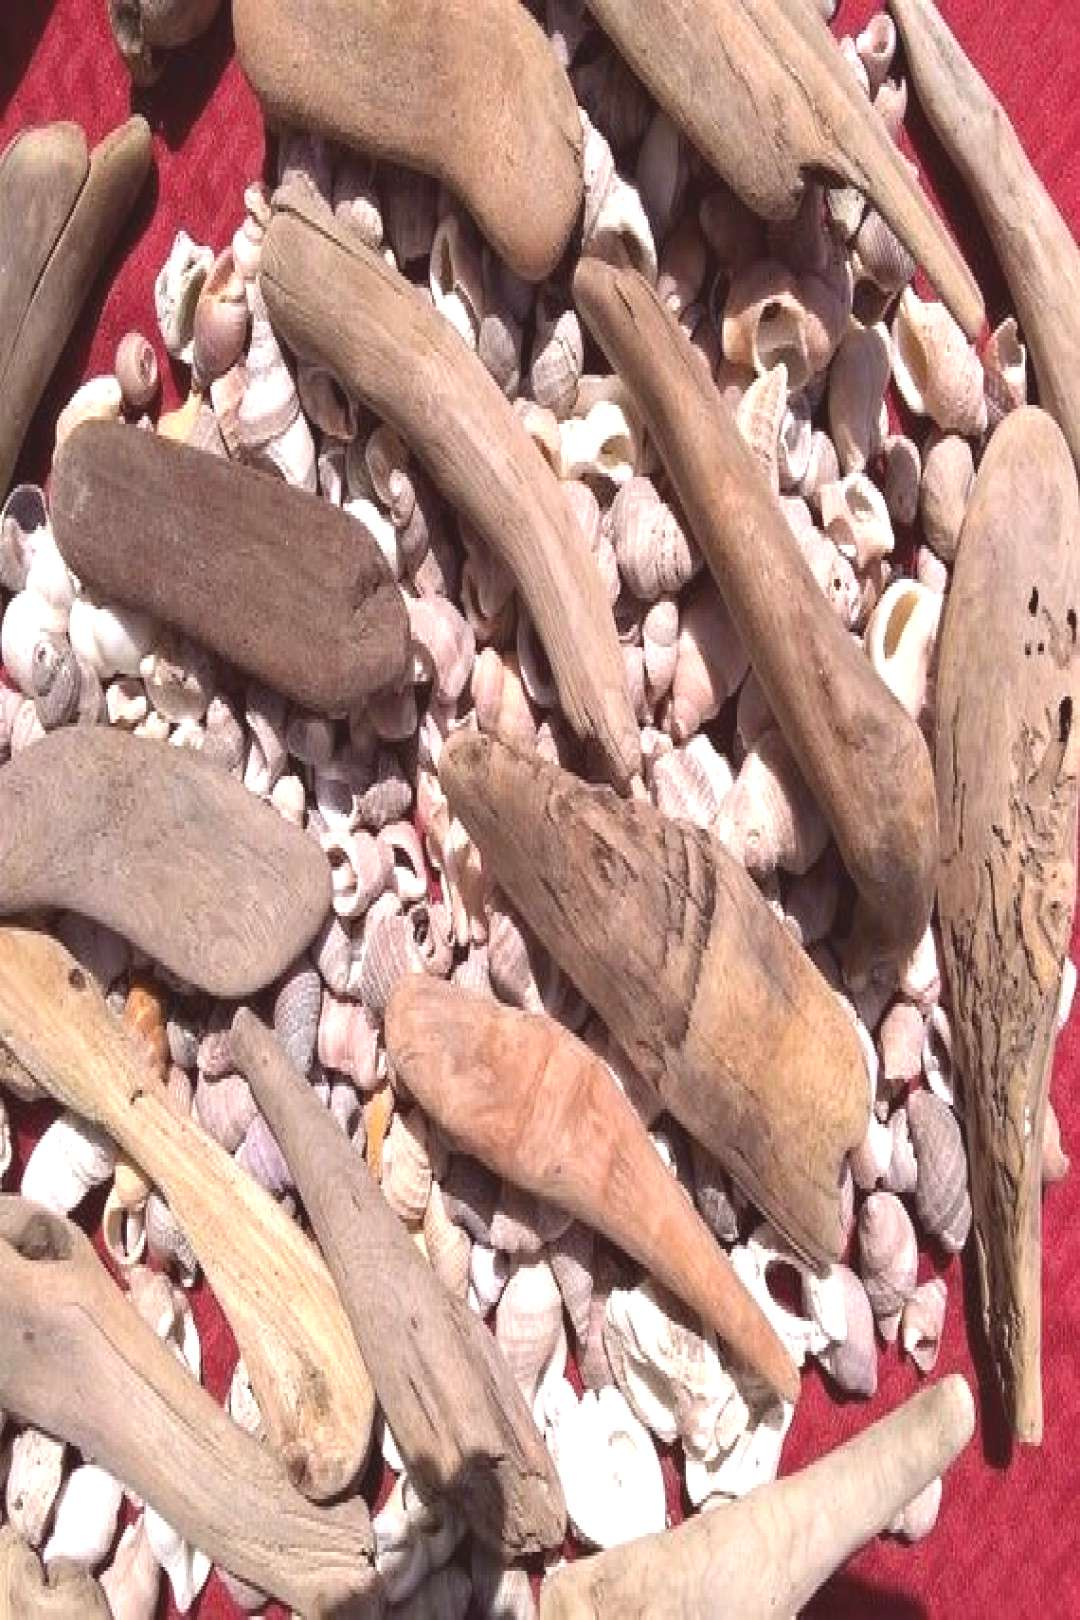 75+ small pieces of driftwood 1/2 quot-4quot pieces, high quality driftwood! Of course, check our reviews